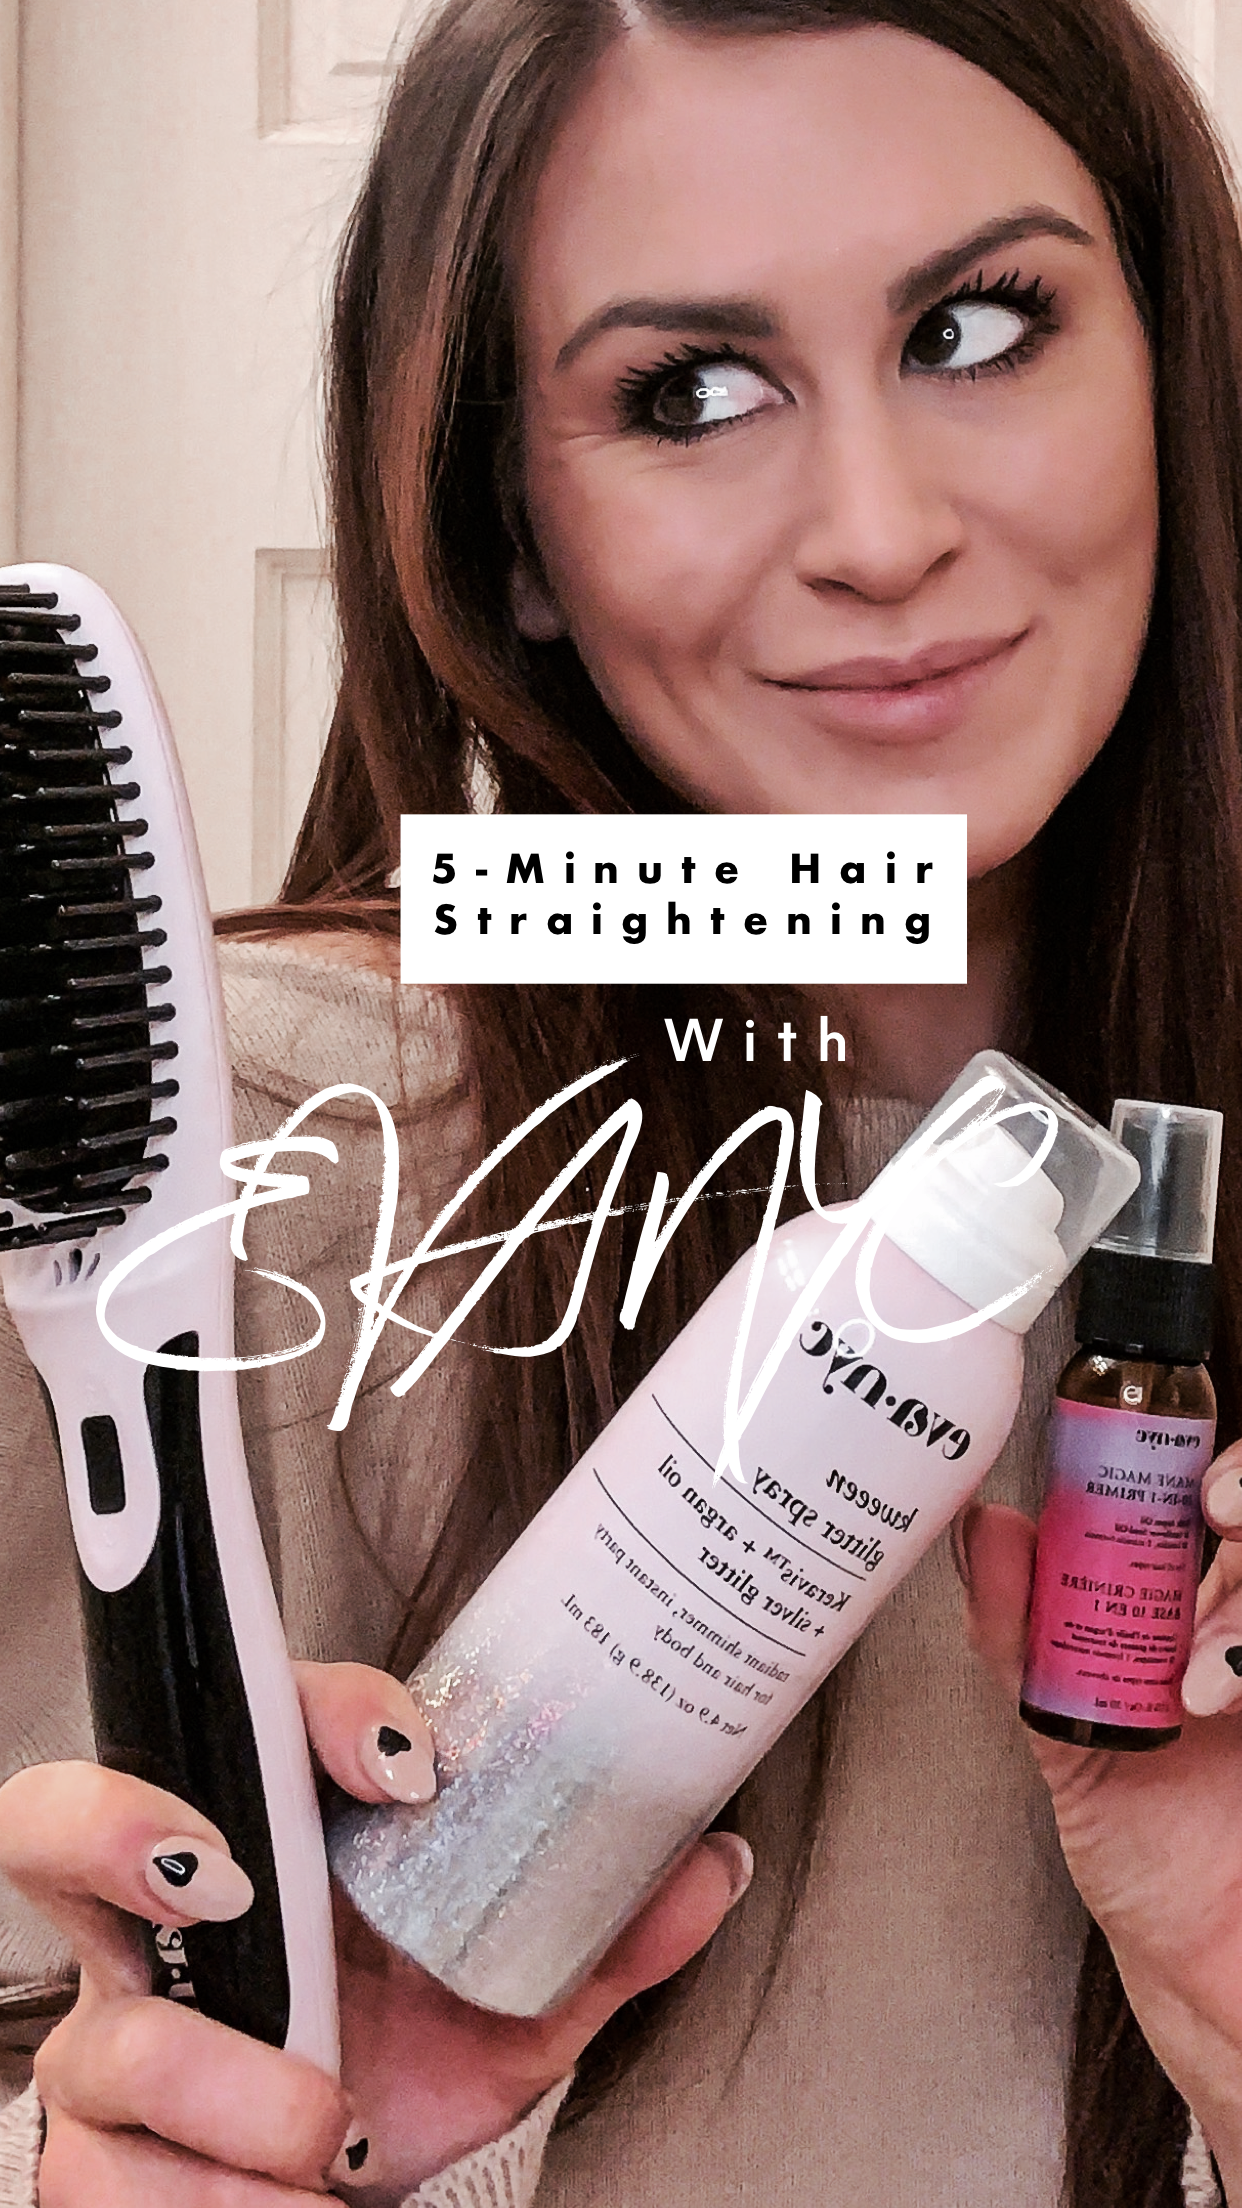 5 Minute Straightening With EVANYC!